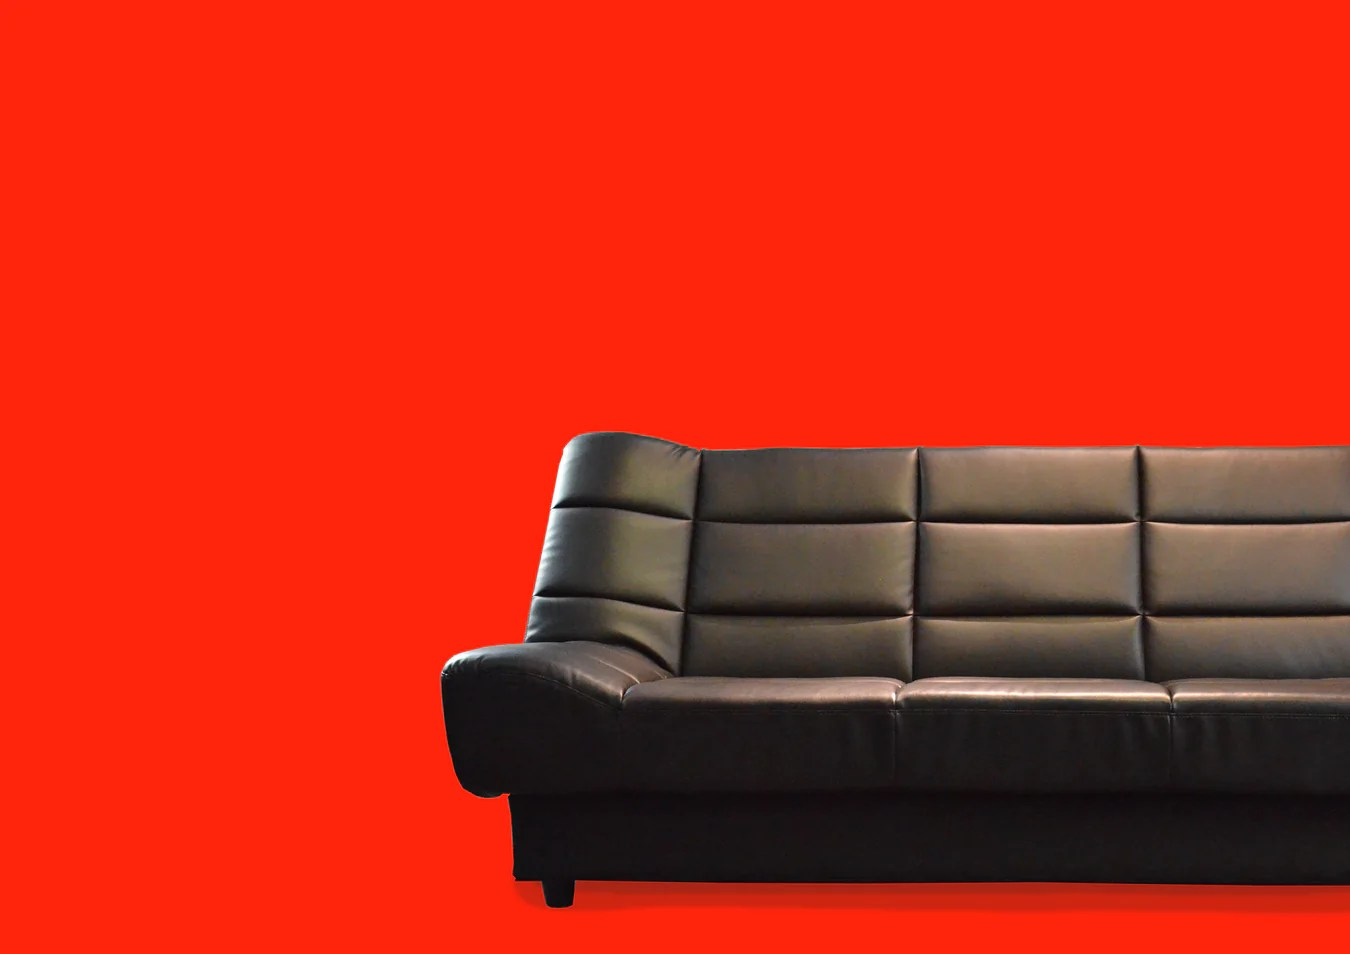 Sofa Bed Giant Malaysia Novena Furniture Furniture Specialist Since 1984 Novena